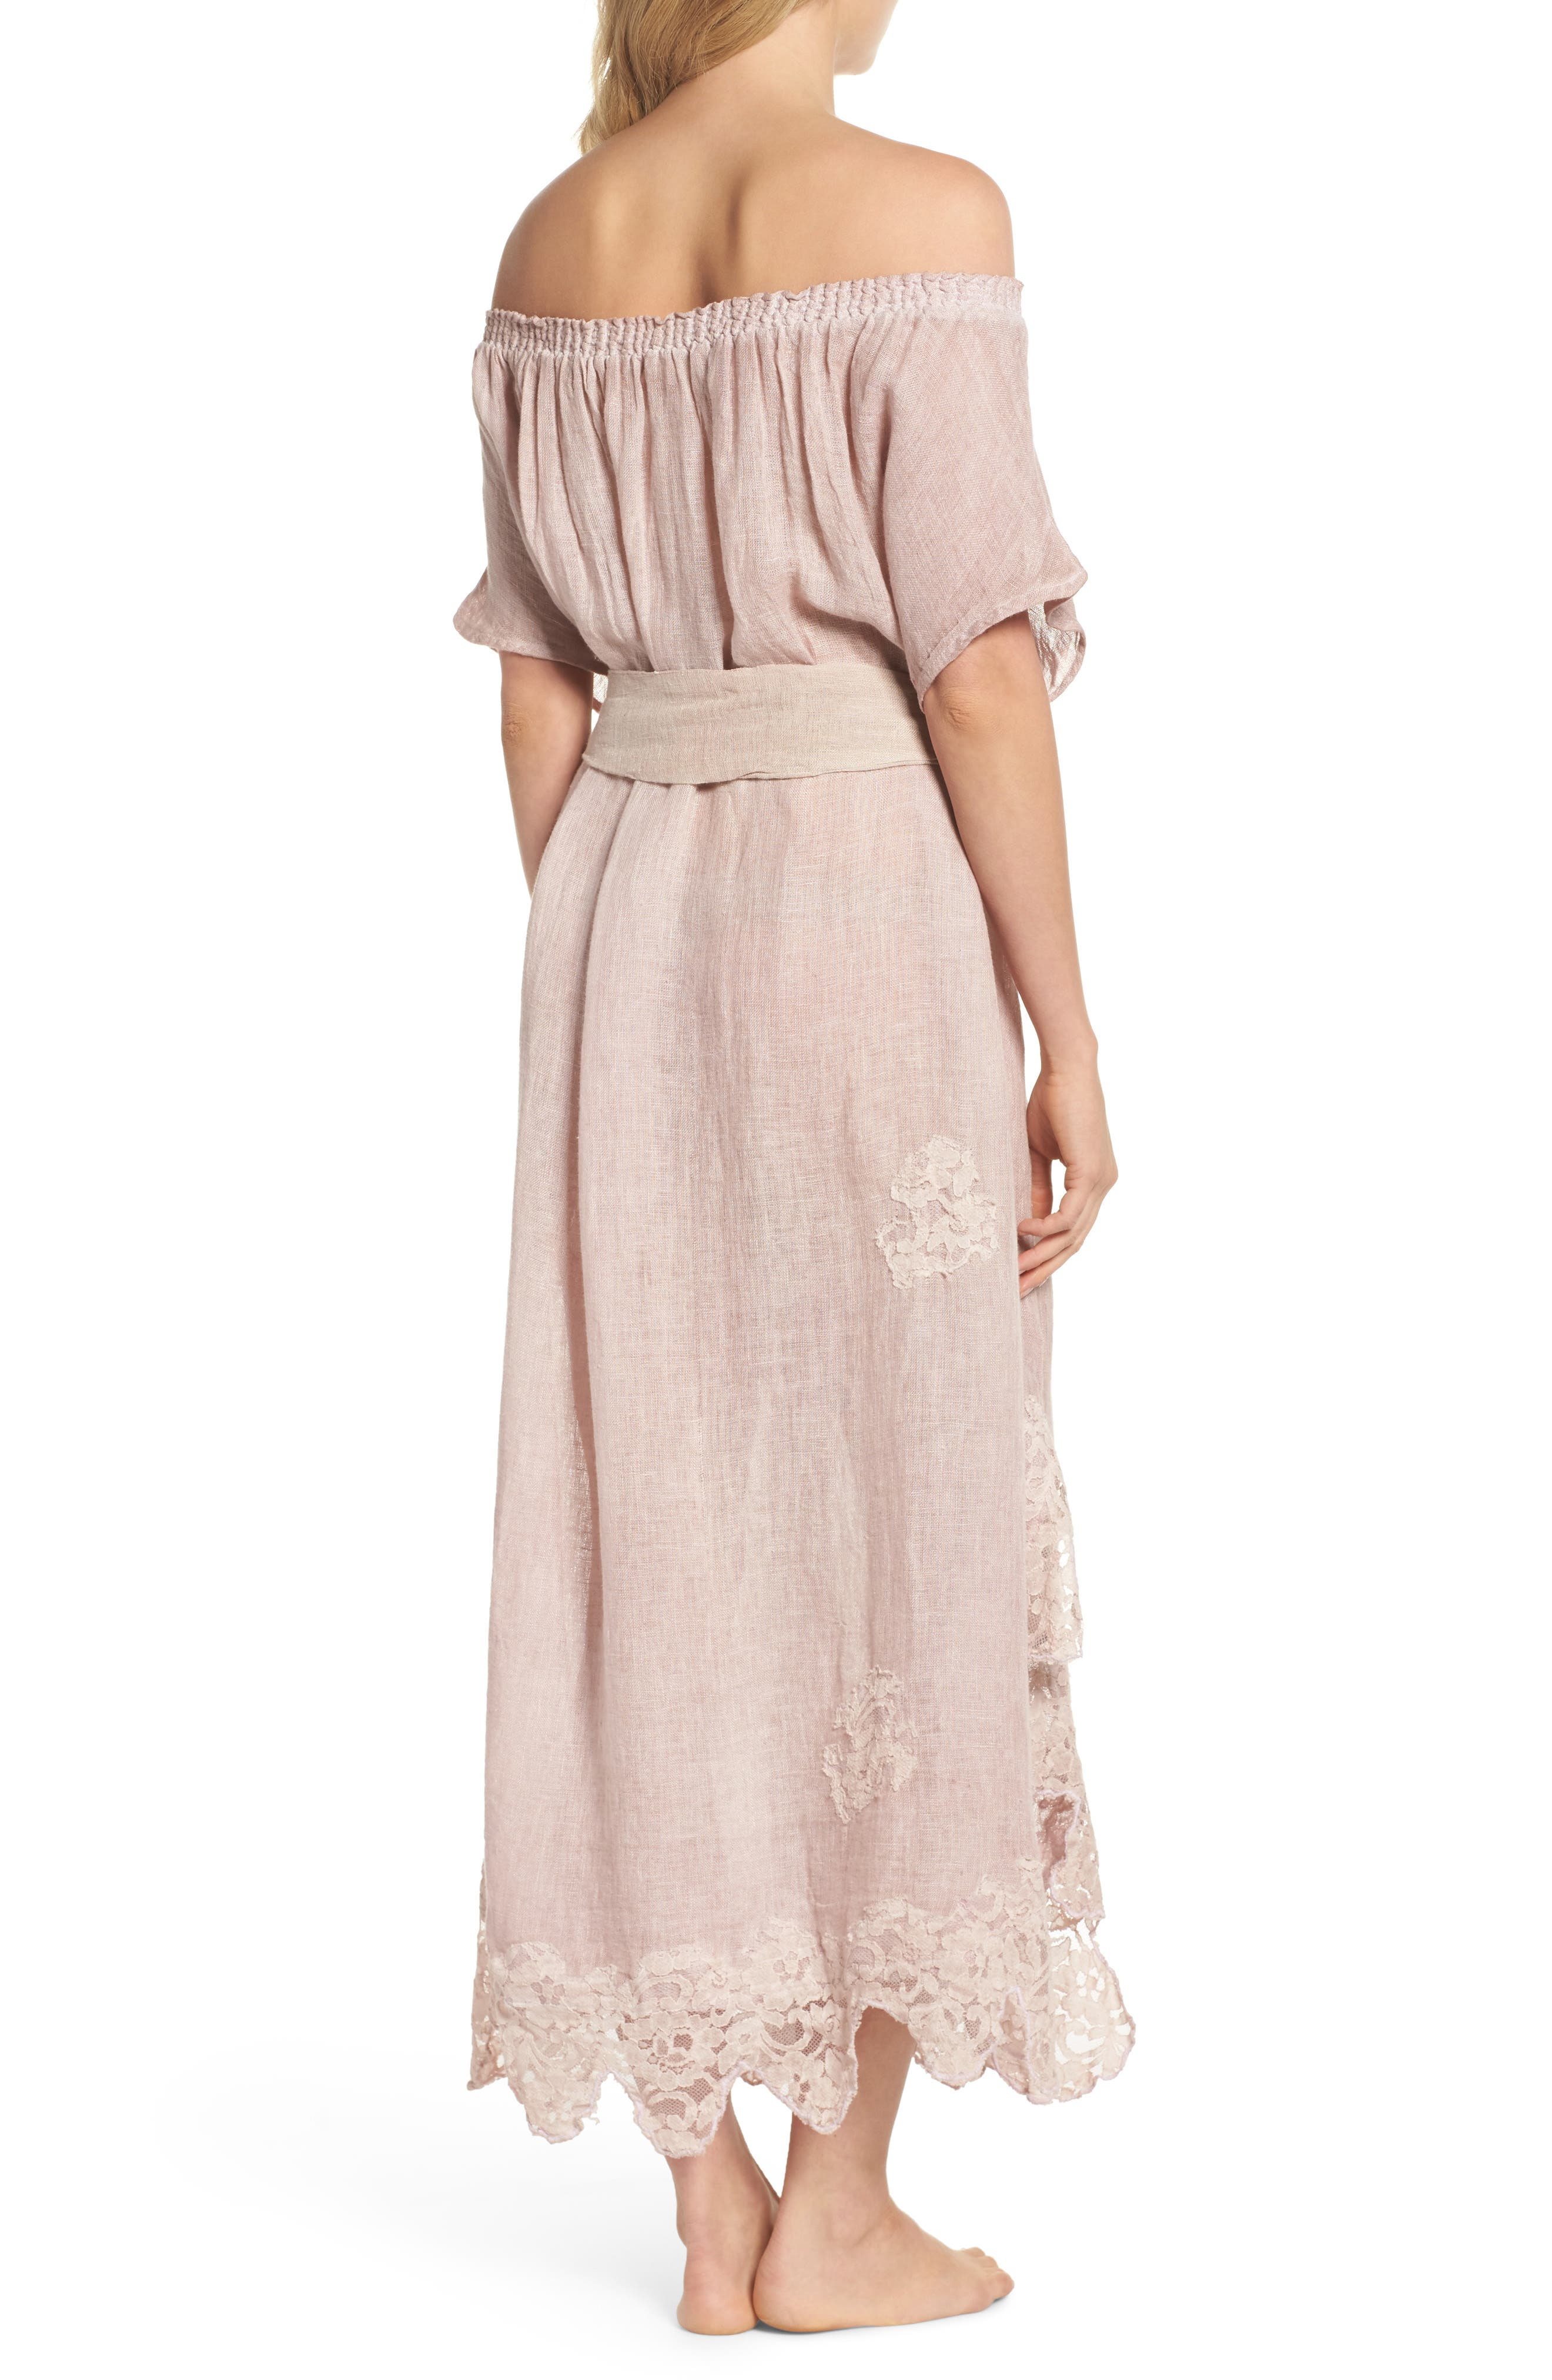 Daisy Linen Cover-Up Dress,                             Alternate thumbnail 2, color,                             Dusty Pink